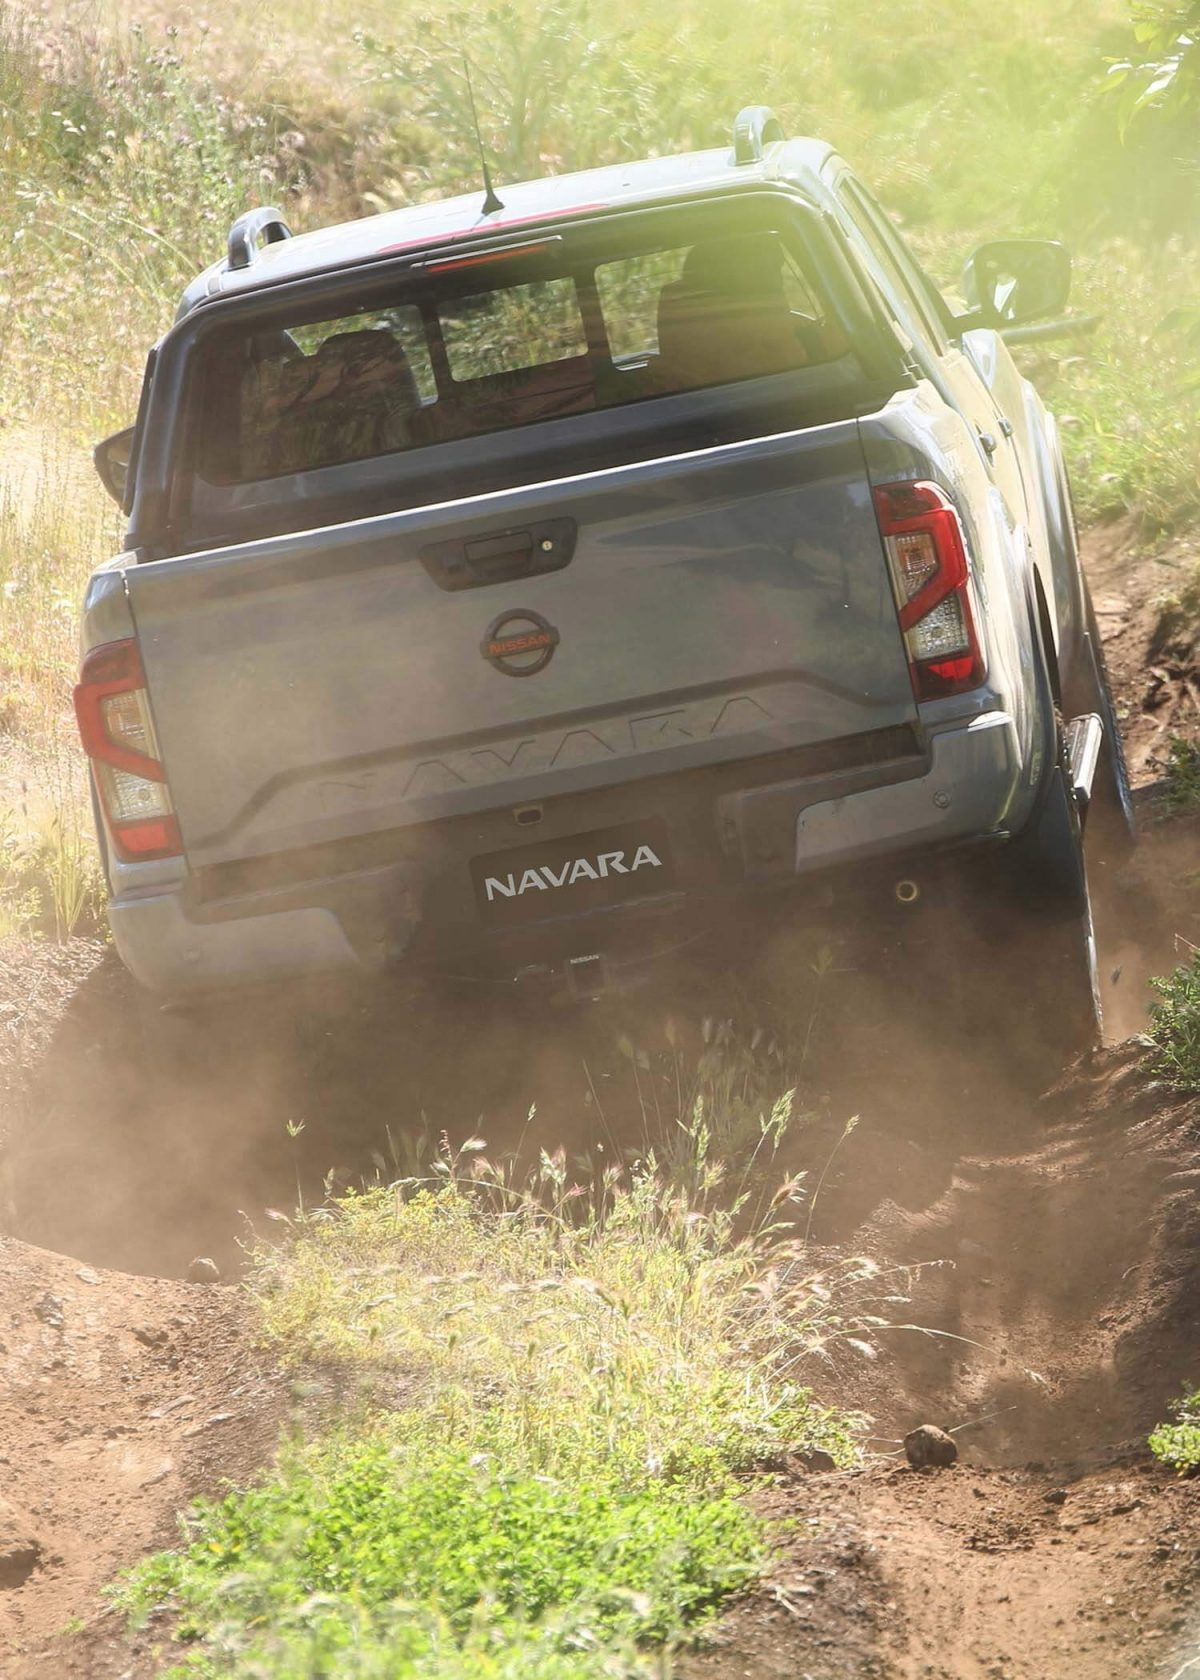 New Nissan Navara 3/4 profile in country landscape